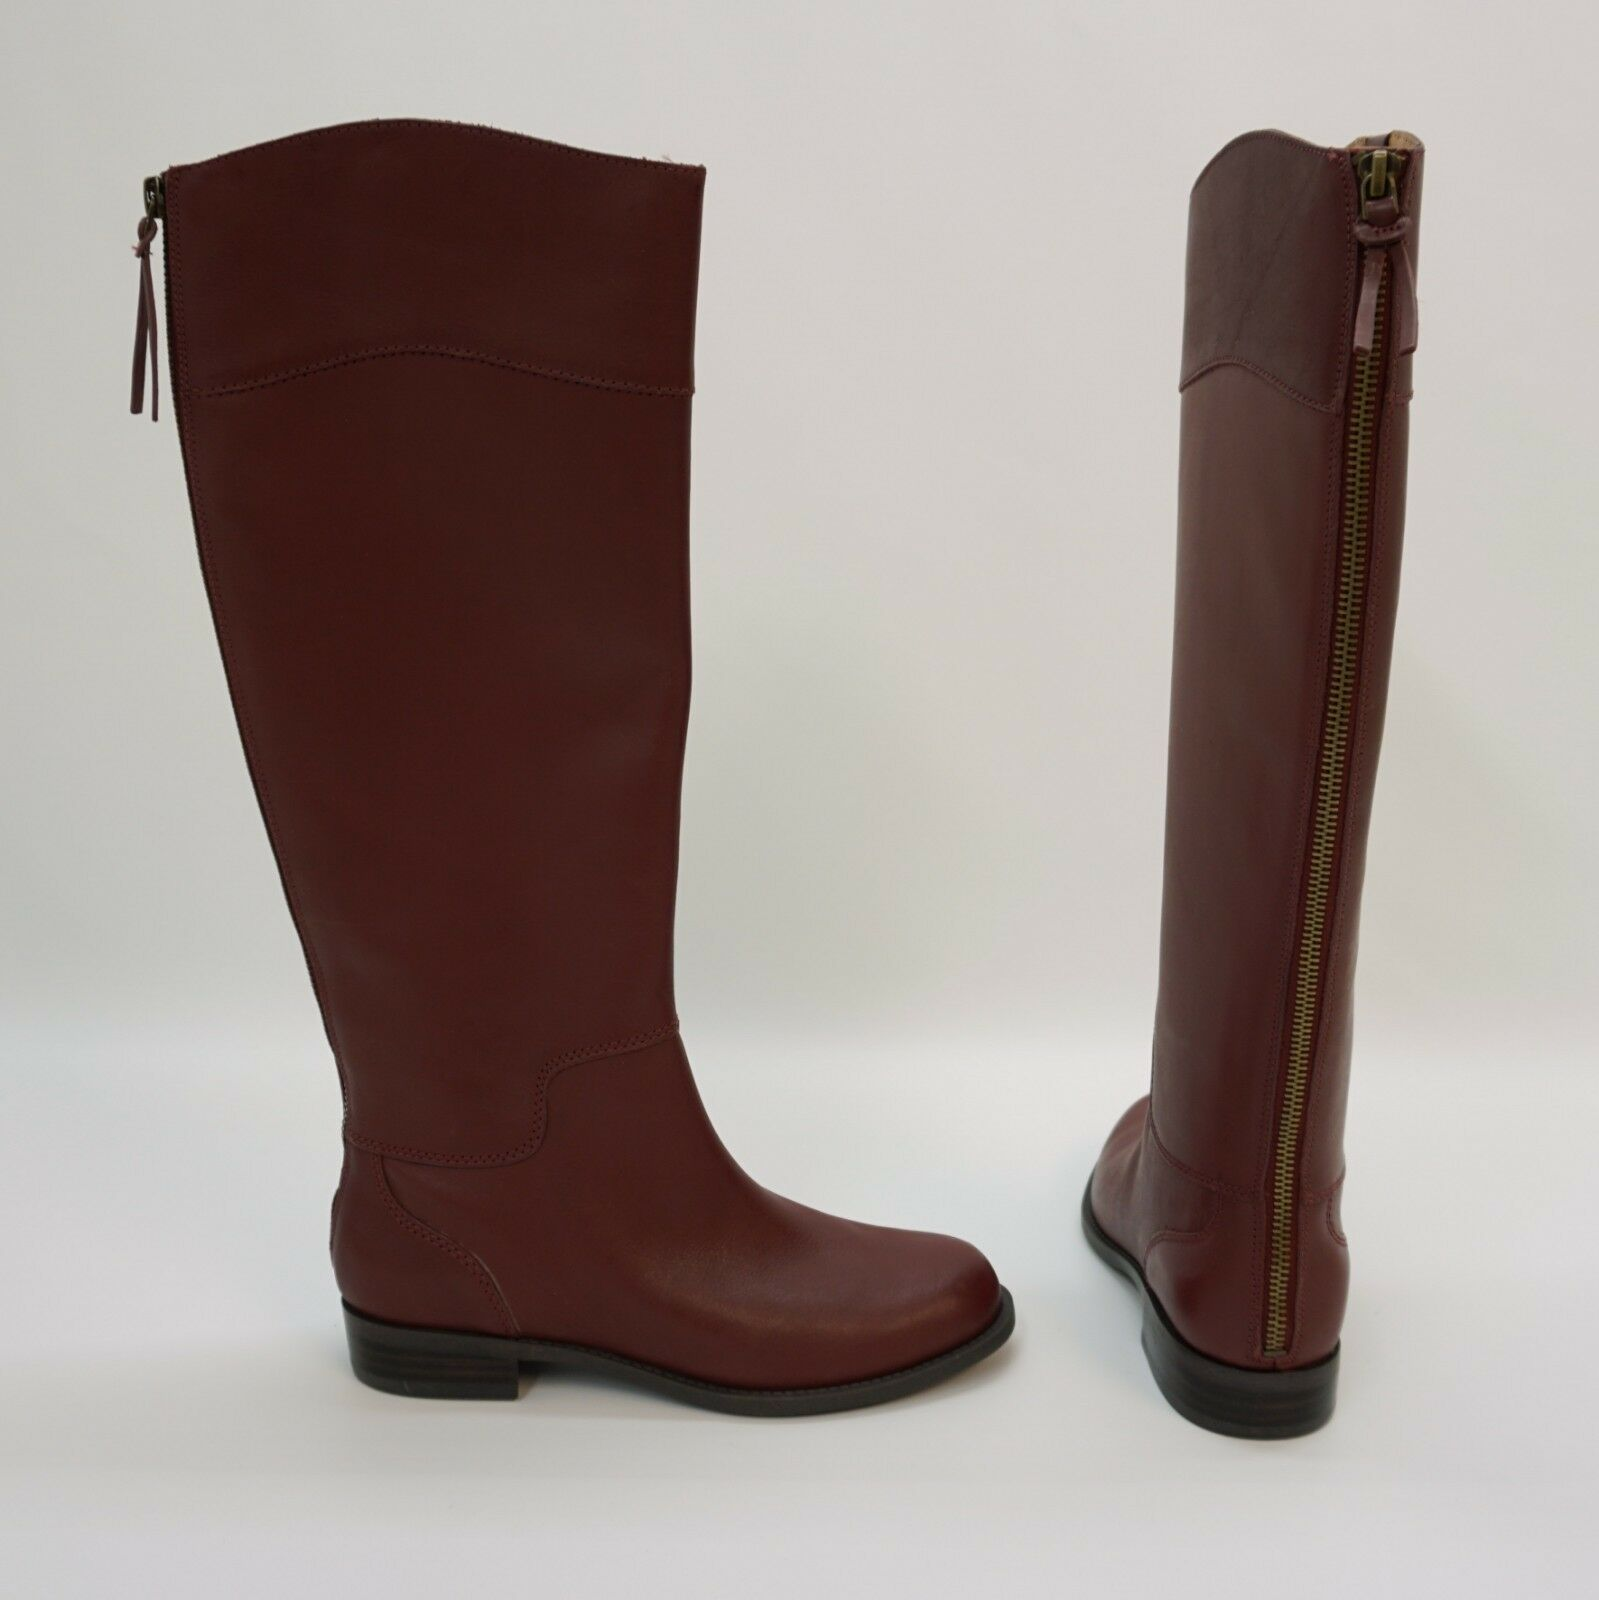 Nine West shoes Counter Tall Knee High Back Zipper Boots Wine Dark Red 5.5 M  169